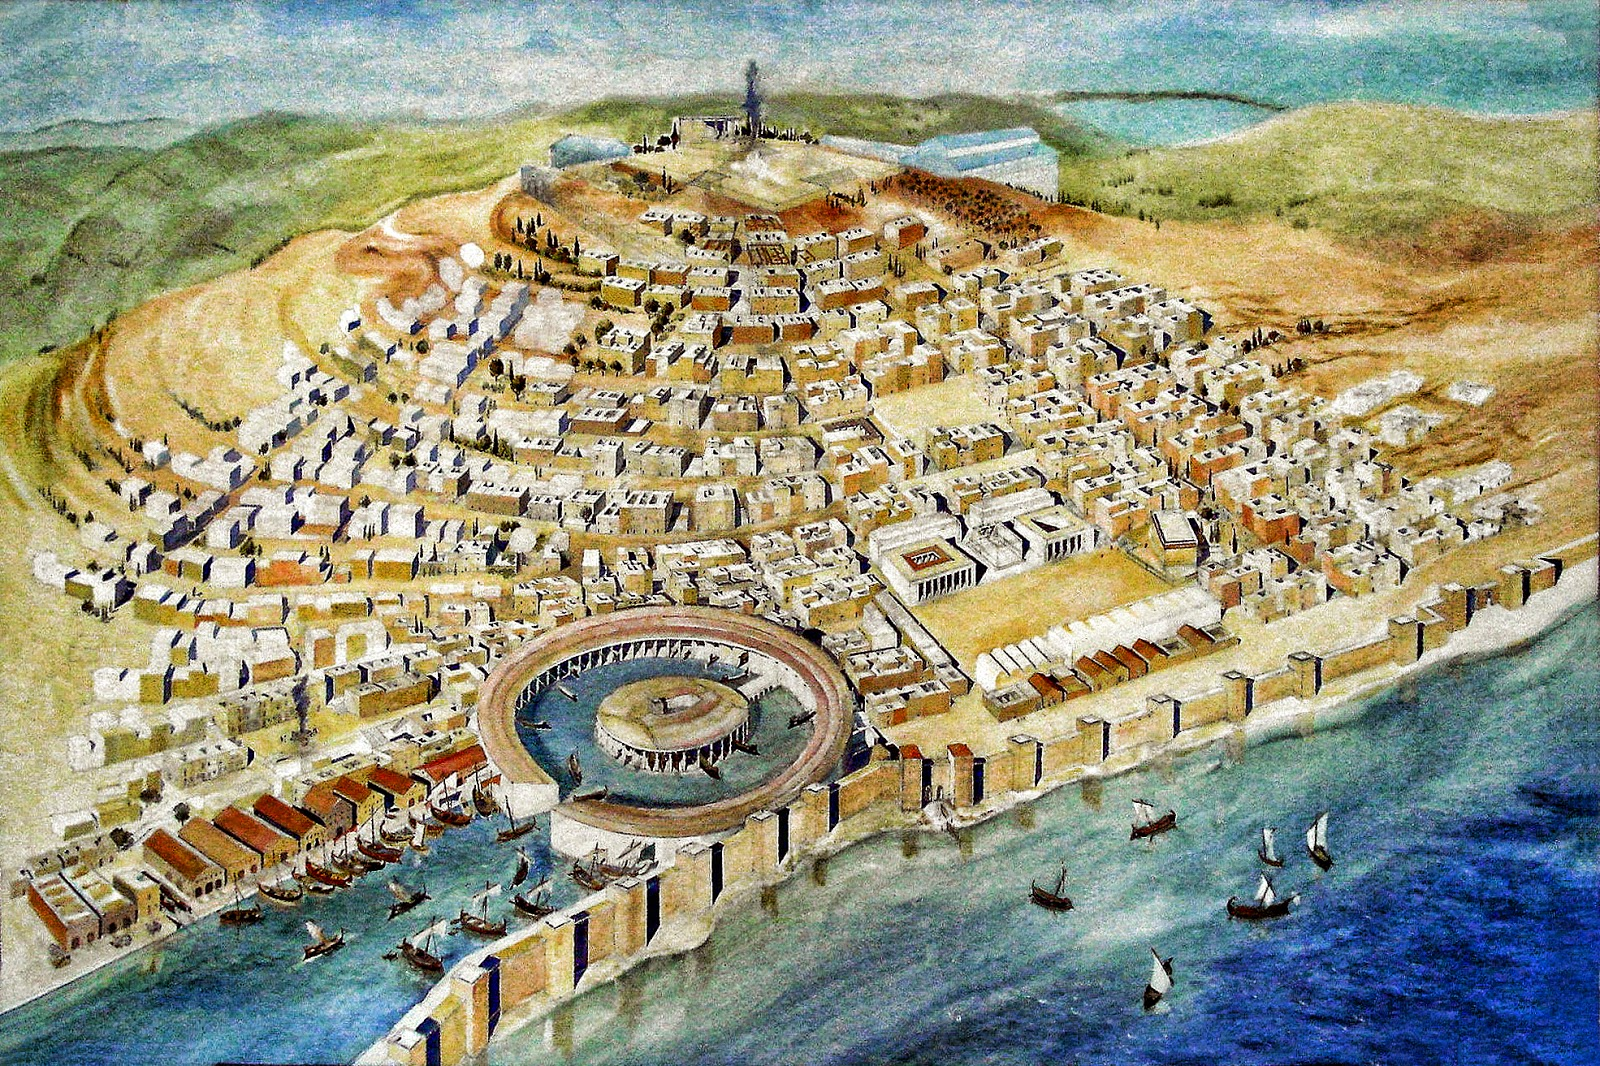 A painting of the intricate harbor and ancient city of ...